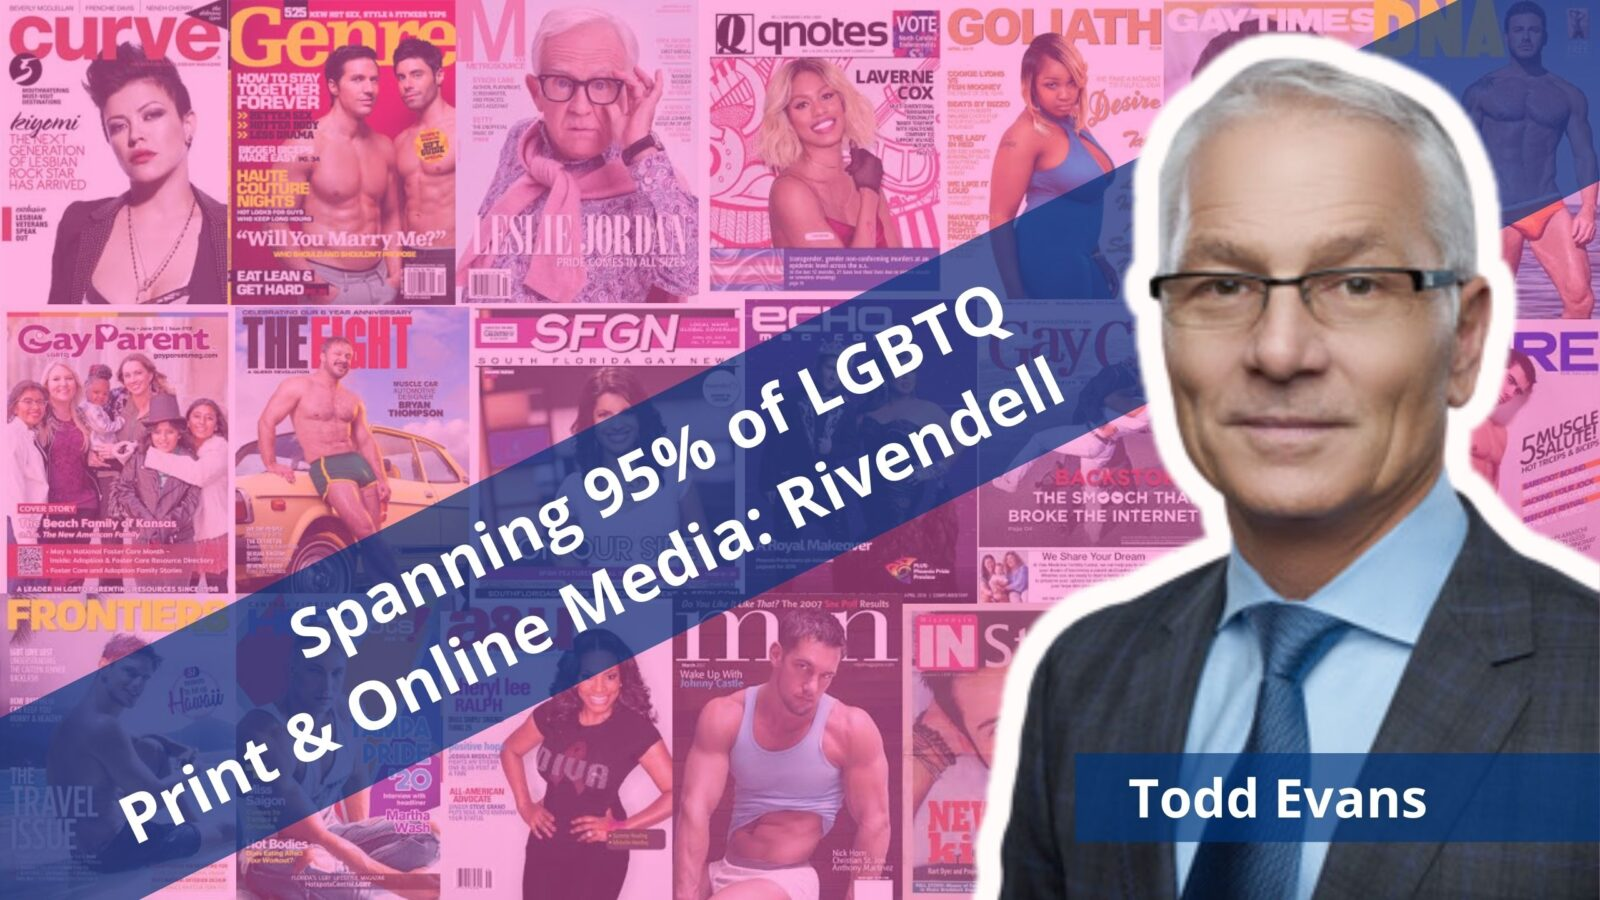 Todd Evans CEO Rivendell Media out gay entrepreneur lgbtq business owners lesbian queer online community OutBuro